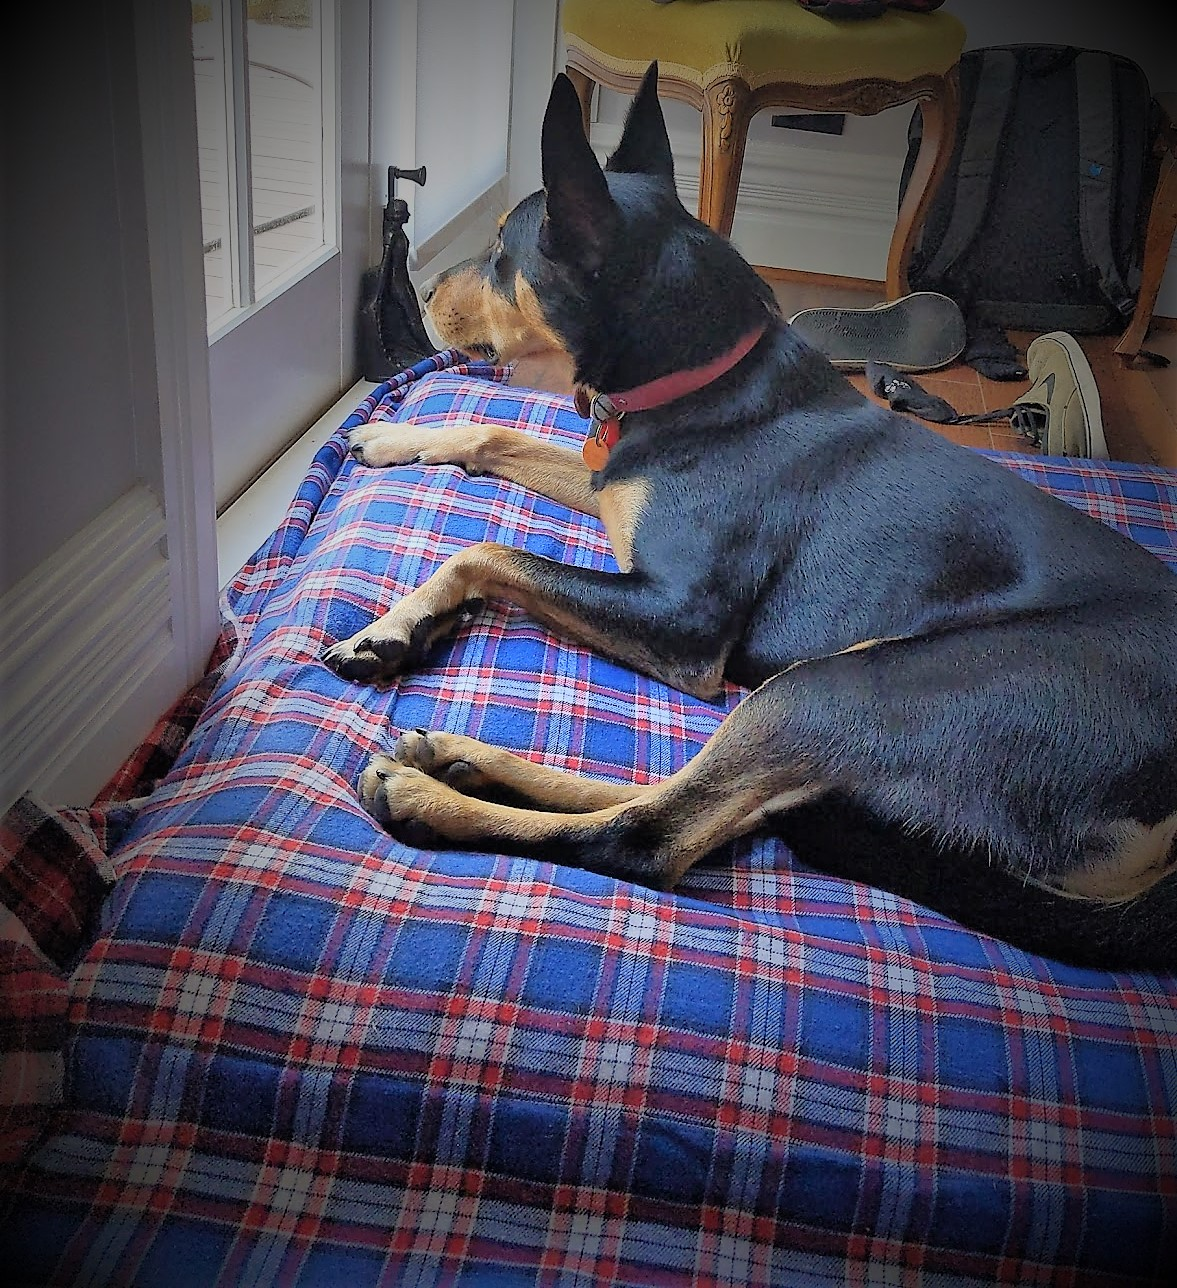 A black and tan keplie sits on a blue and red check flannel bed.  He is looking out of the window.